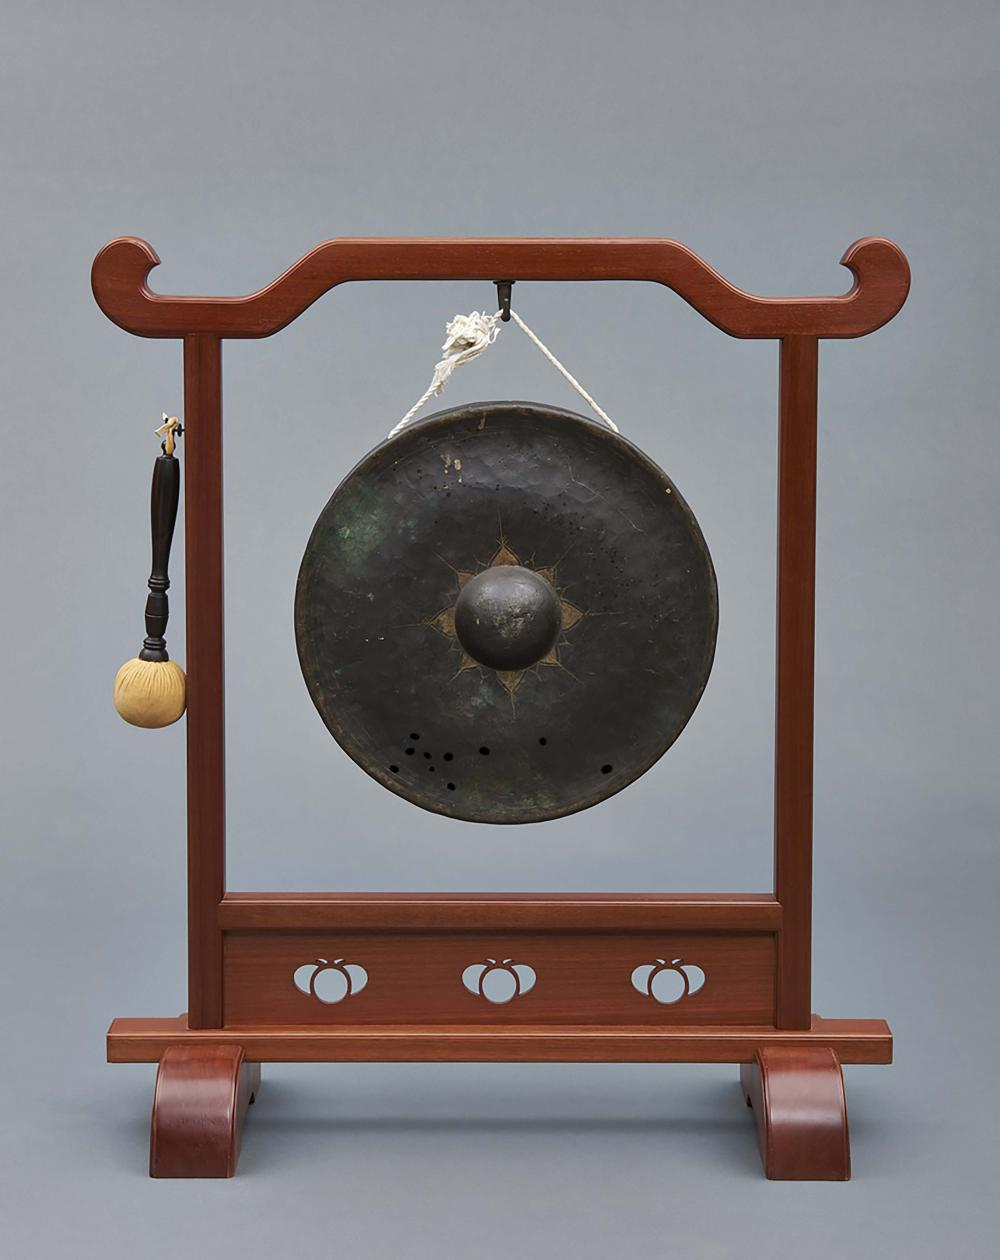 A suspended gong hanging in a hardwood lacquered frame together with a mall